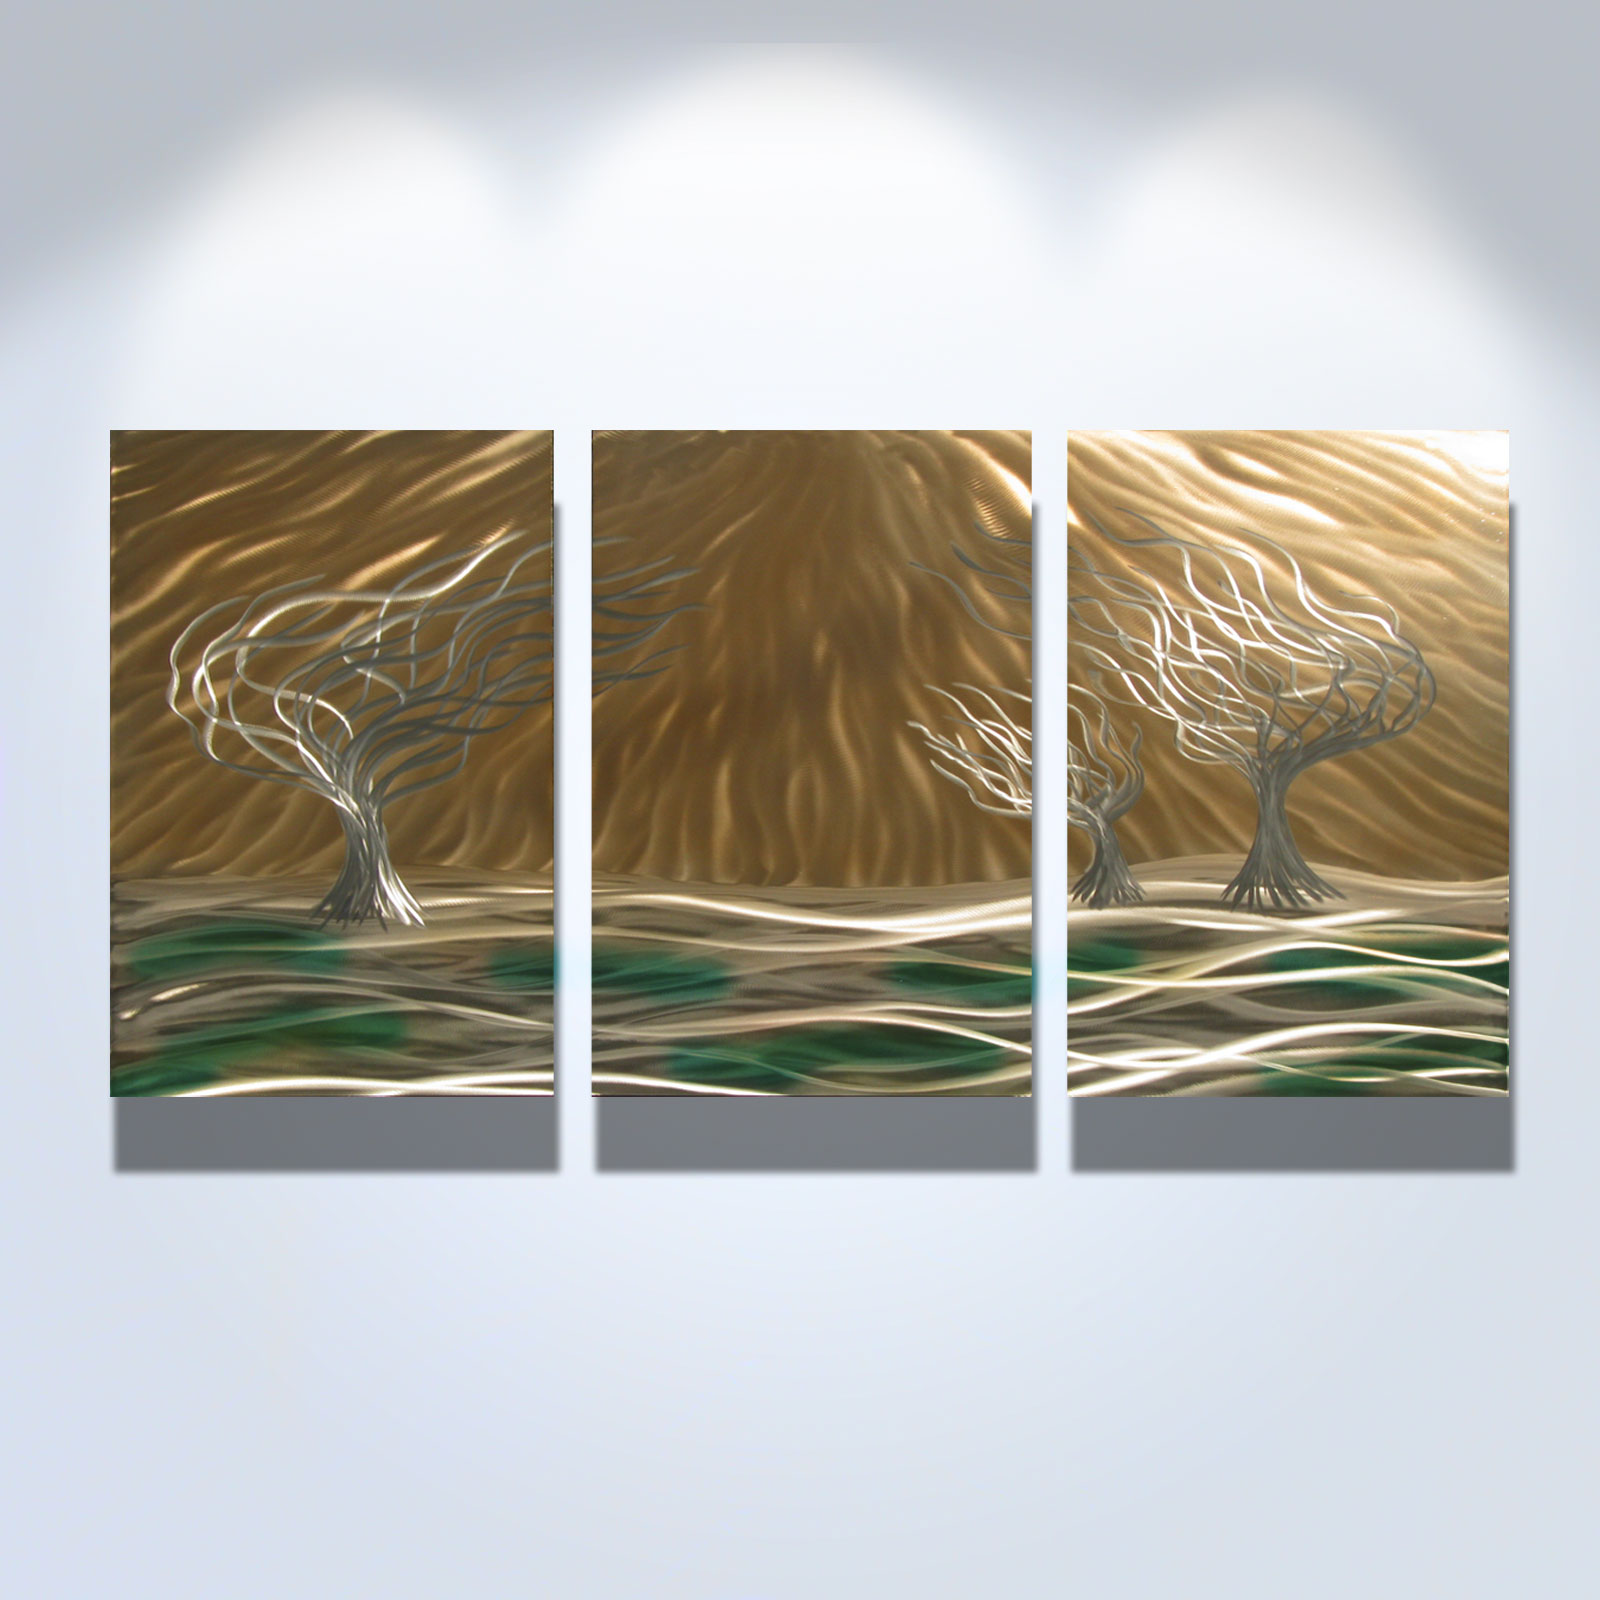 3 trees 3 panel 47 x 24 abstract metal wall art sculpture for 3 panel wall art